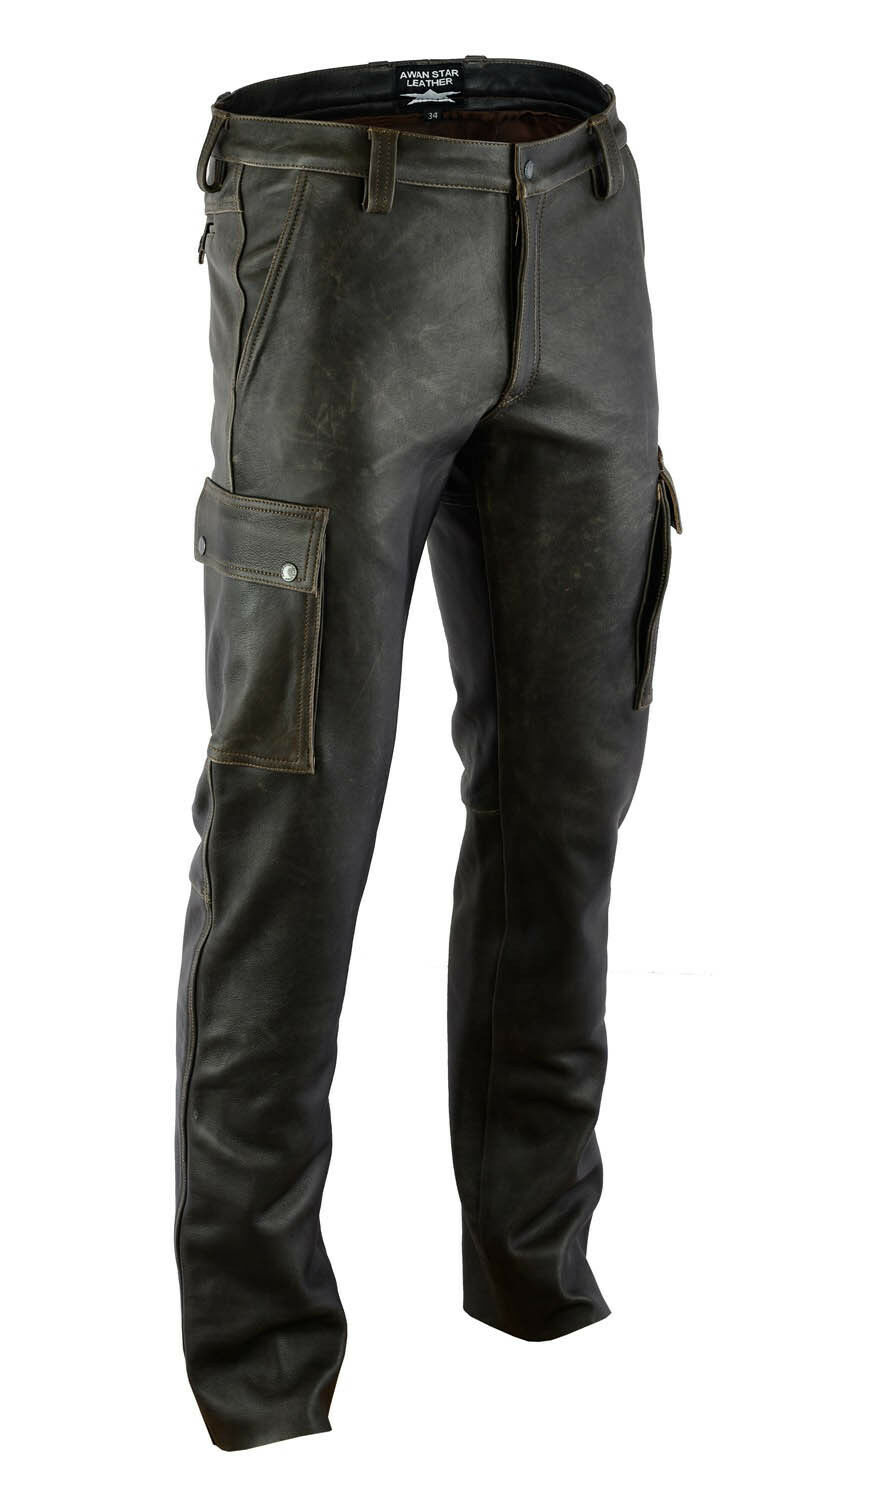 AW7910 antik Leather combat trousers,Cargo trousers,Cargo Hose,pantalon n cuir